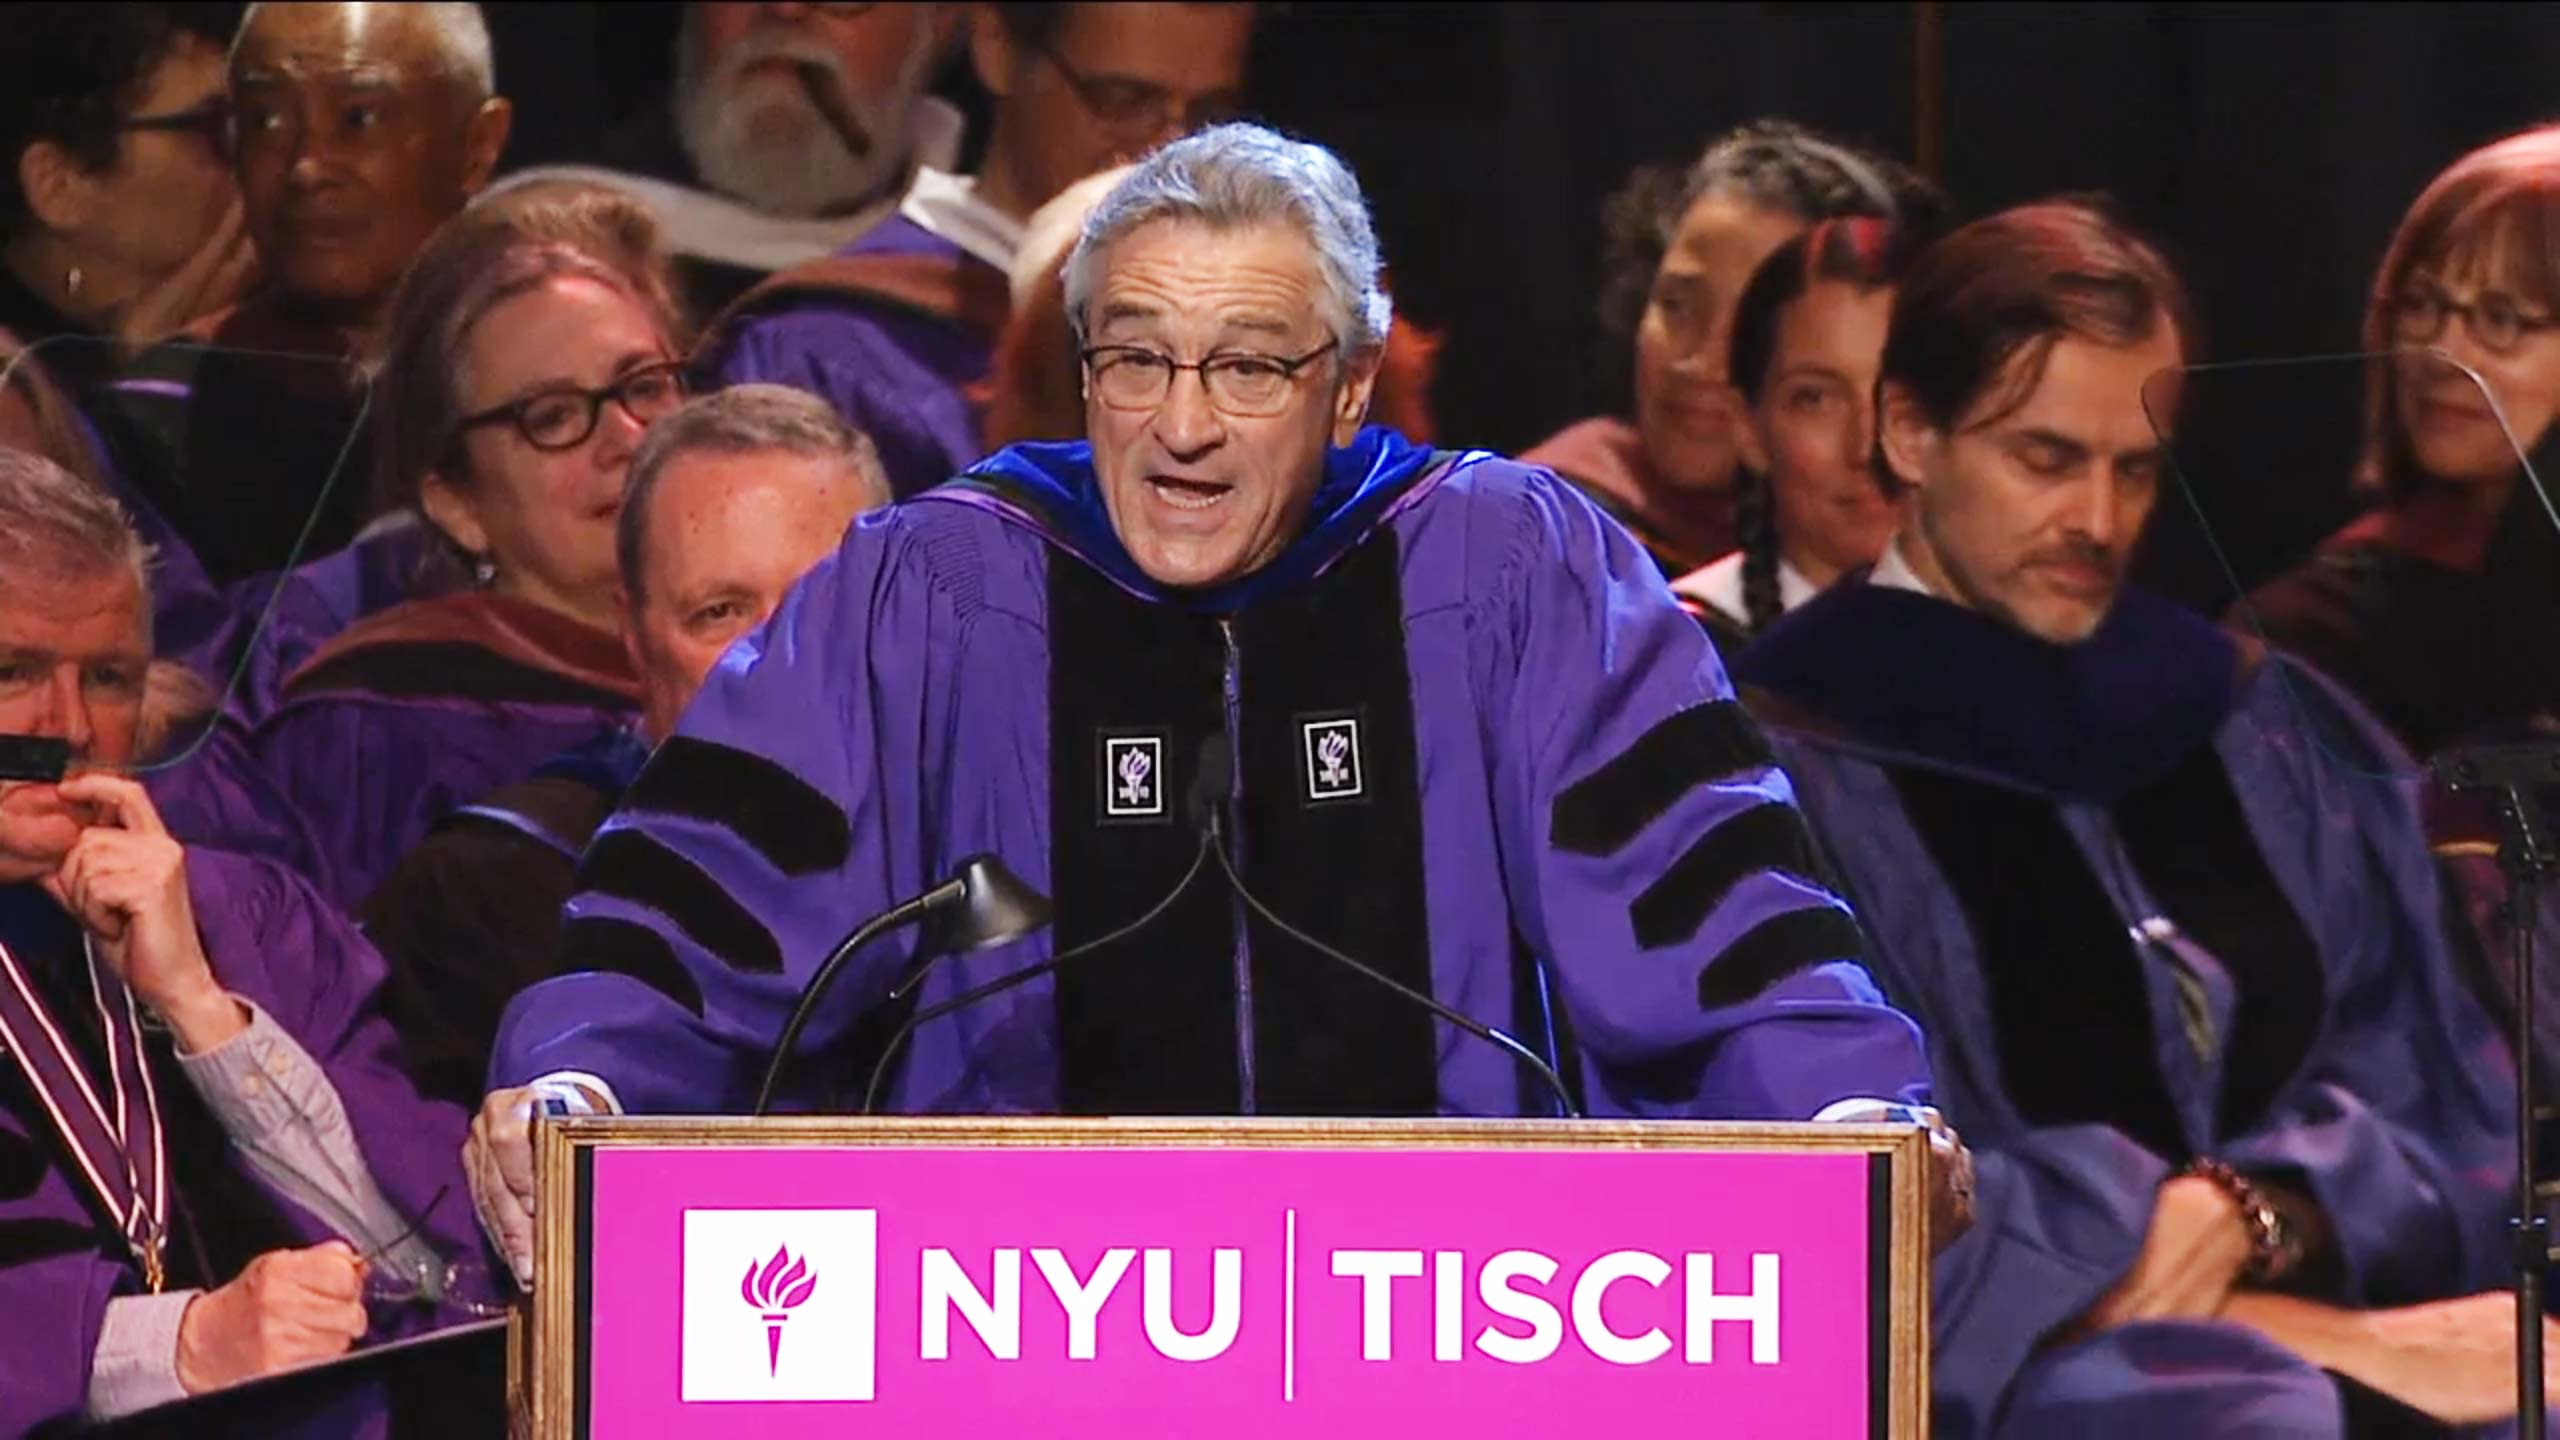 Tisch School Of The Arts Board Of Directors Watch Robert De Niro 39s Speech To 2015 39s Nyu Tisch Graduates